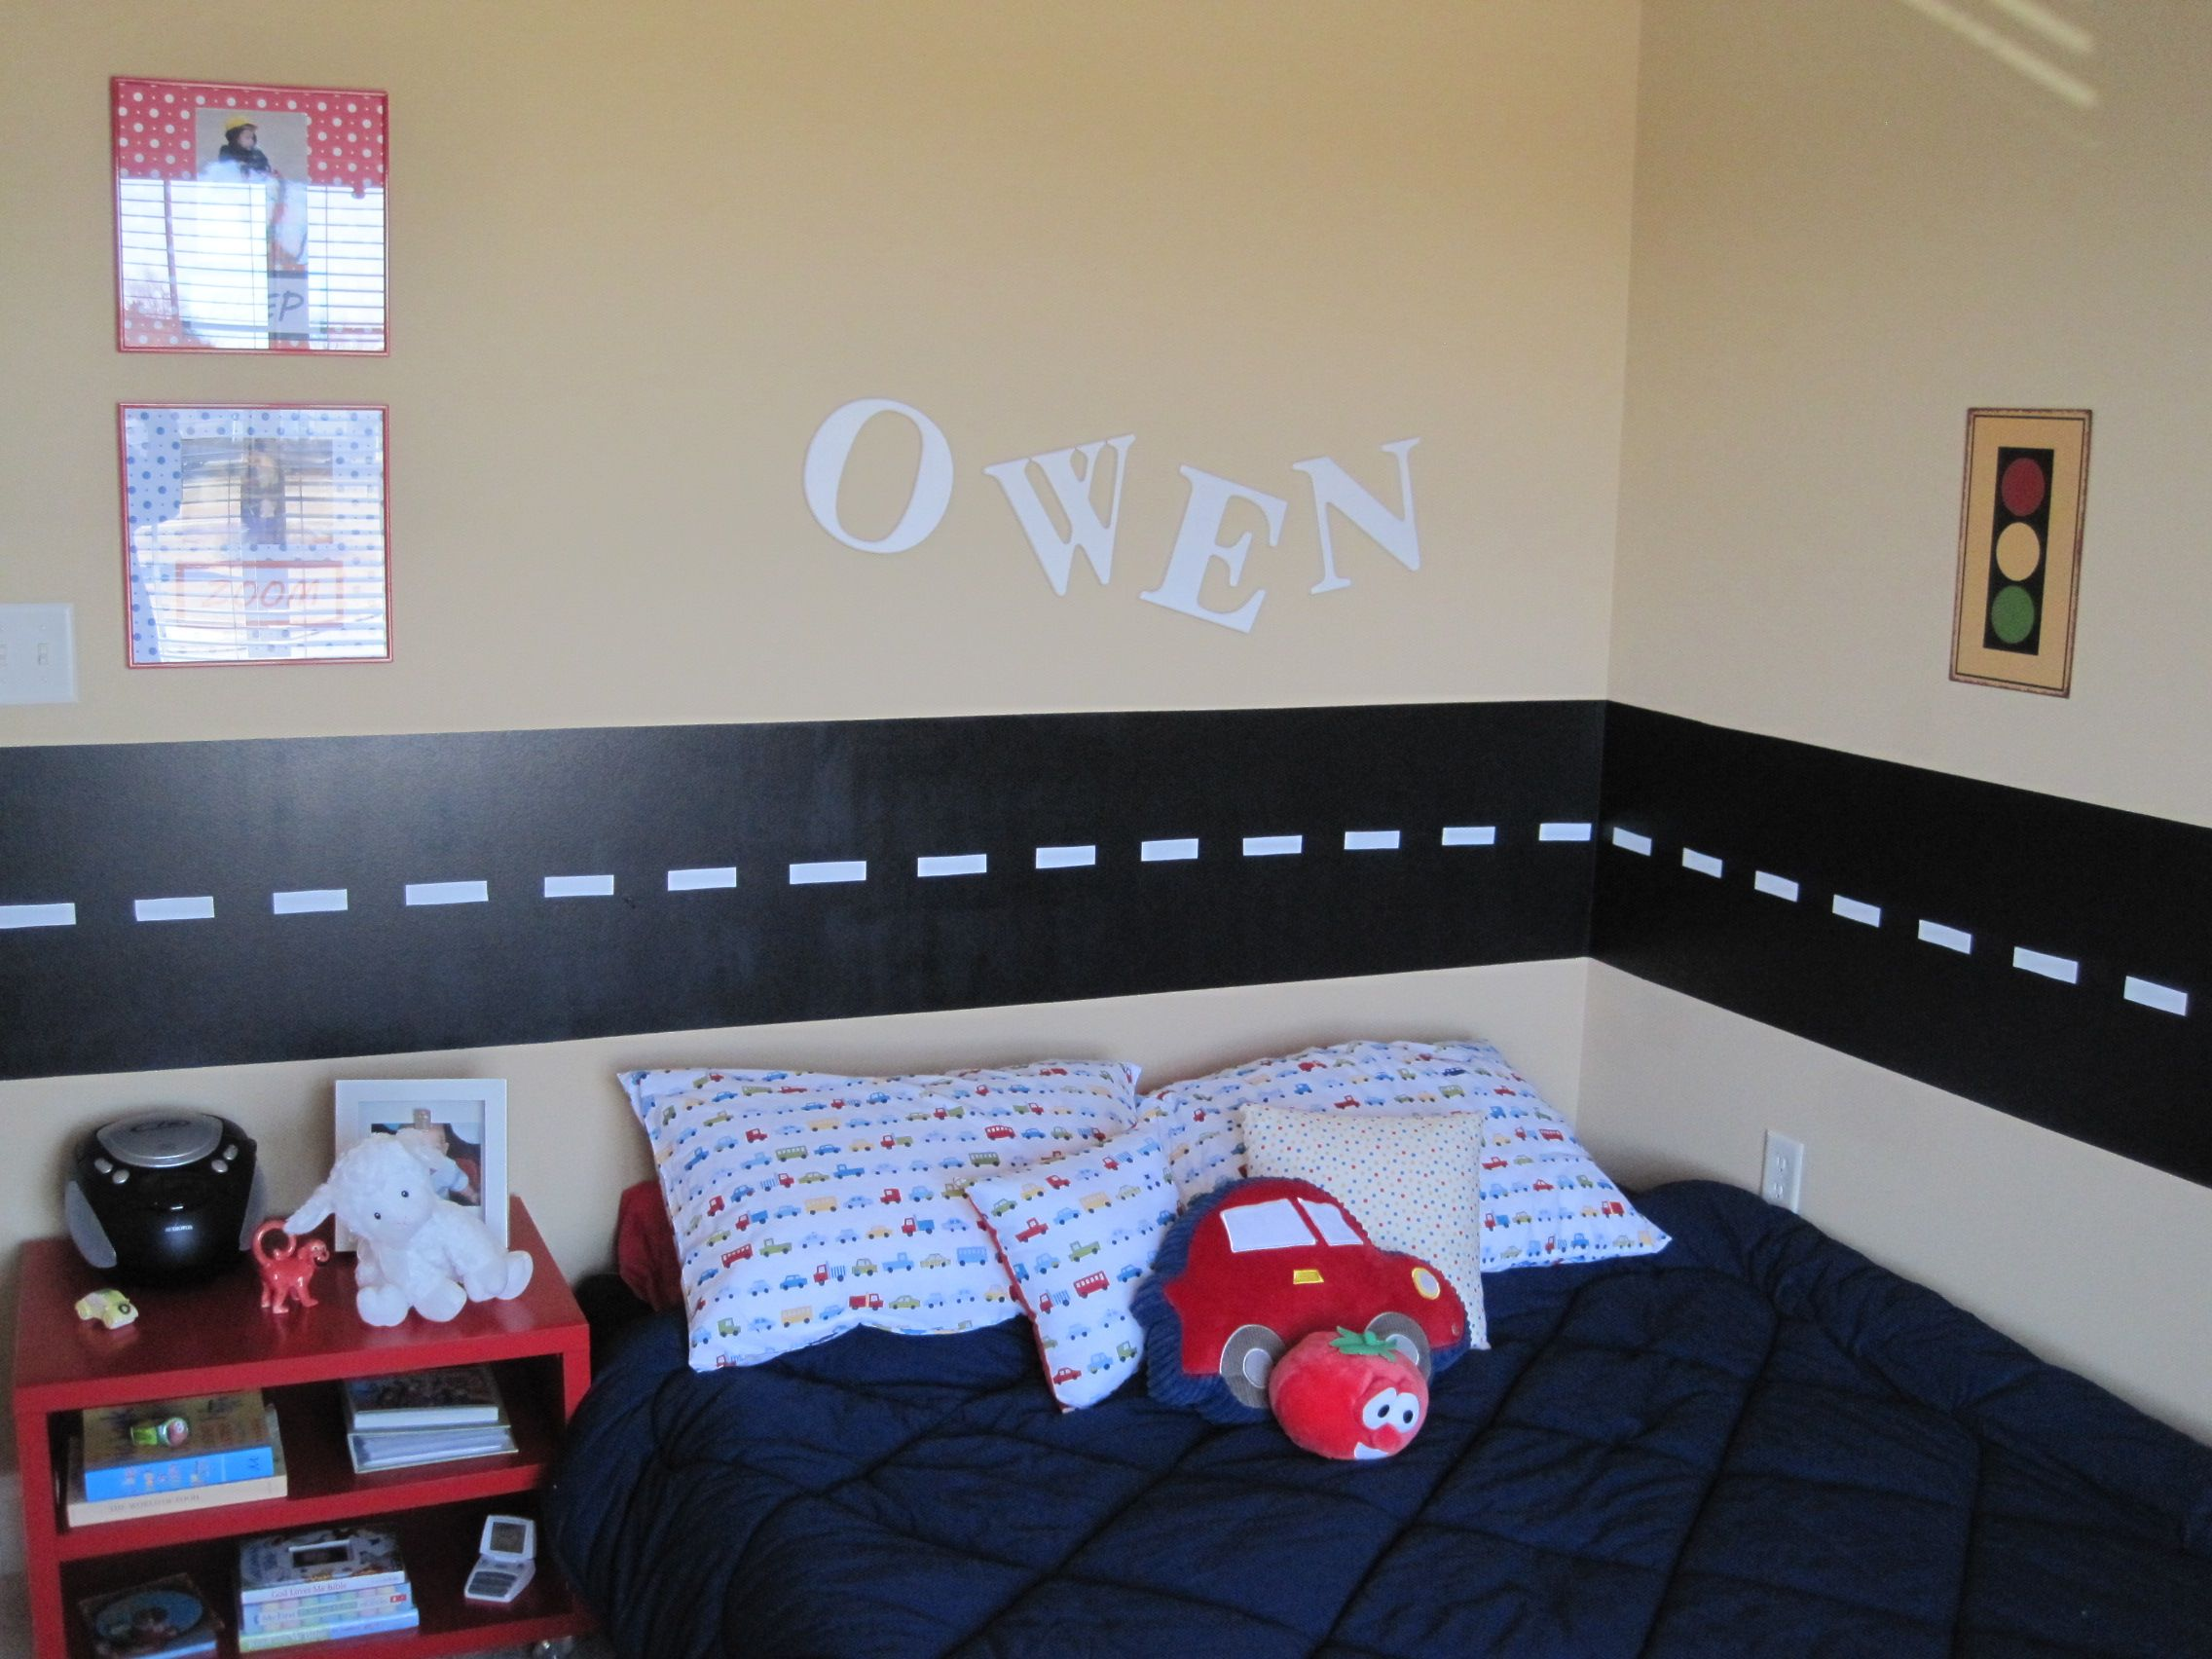 Creative bedroom wall decor ideas - Modern Bedroom Ideas Kids Bedroom Theme Ideas Kitchen Of Charming Boys Room Decorating Toddler Room Decorating Ideas For Teenage Girls Cool Decorating